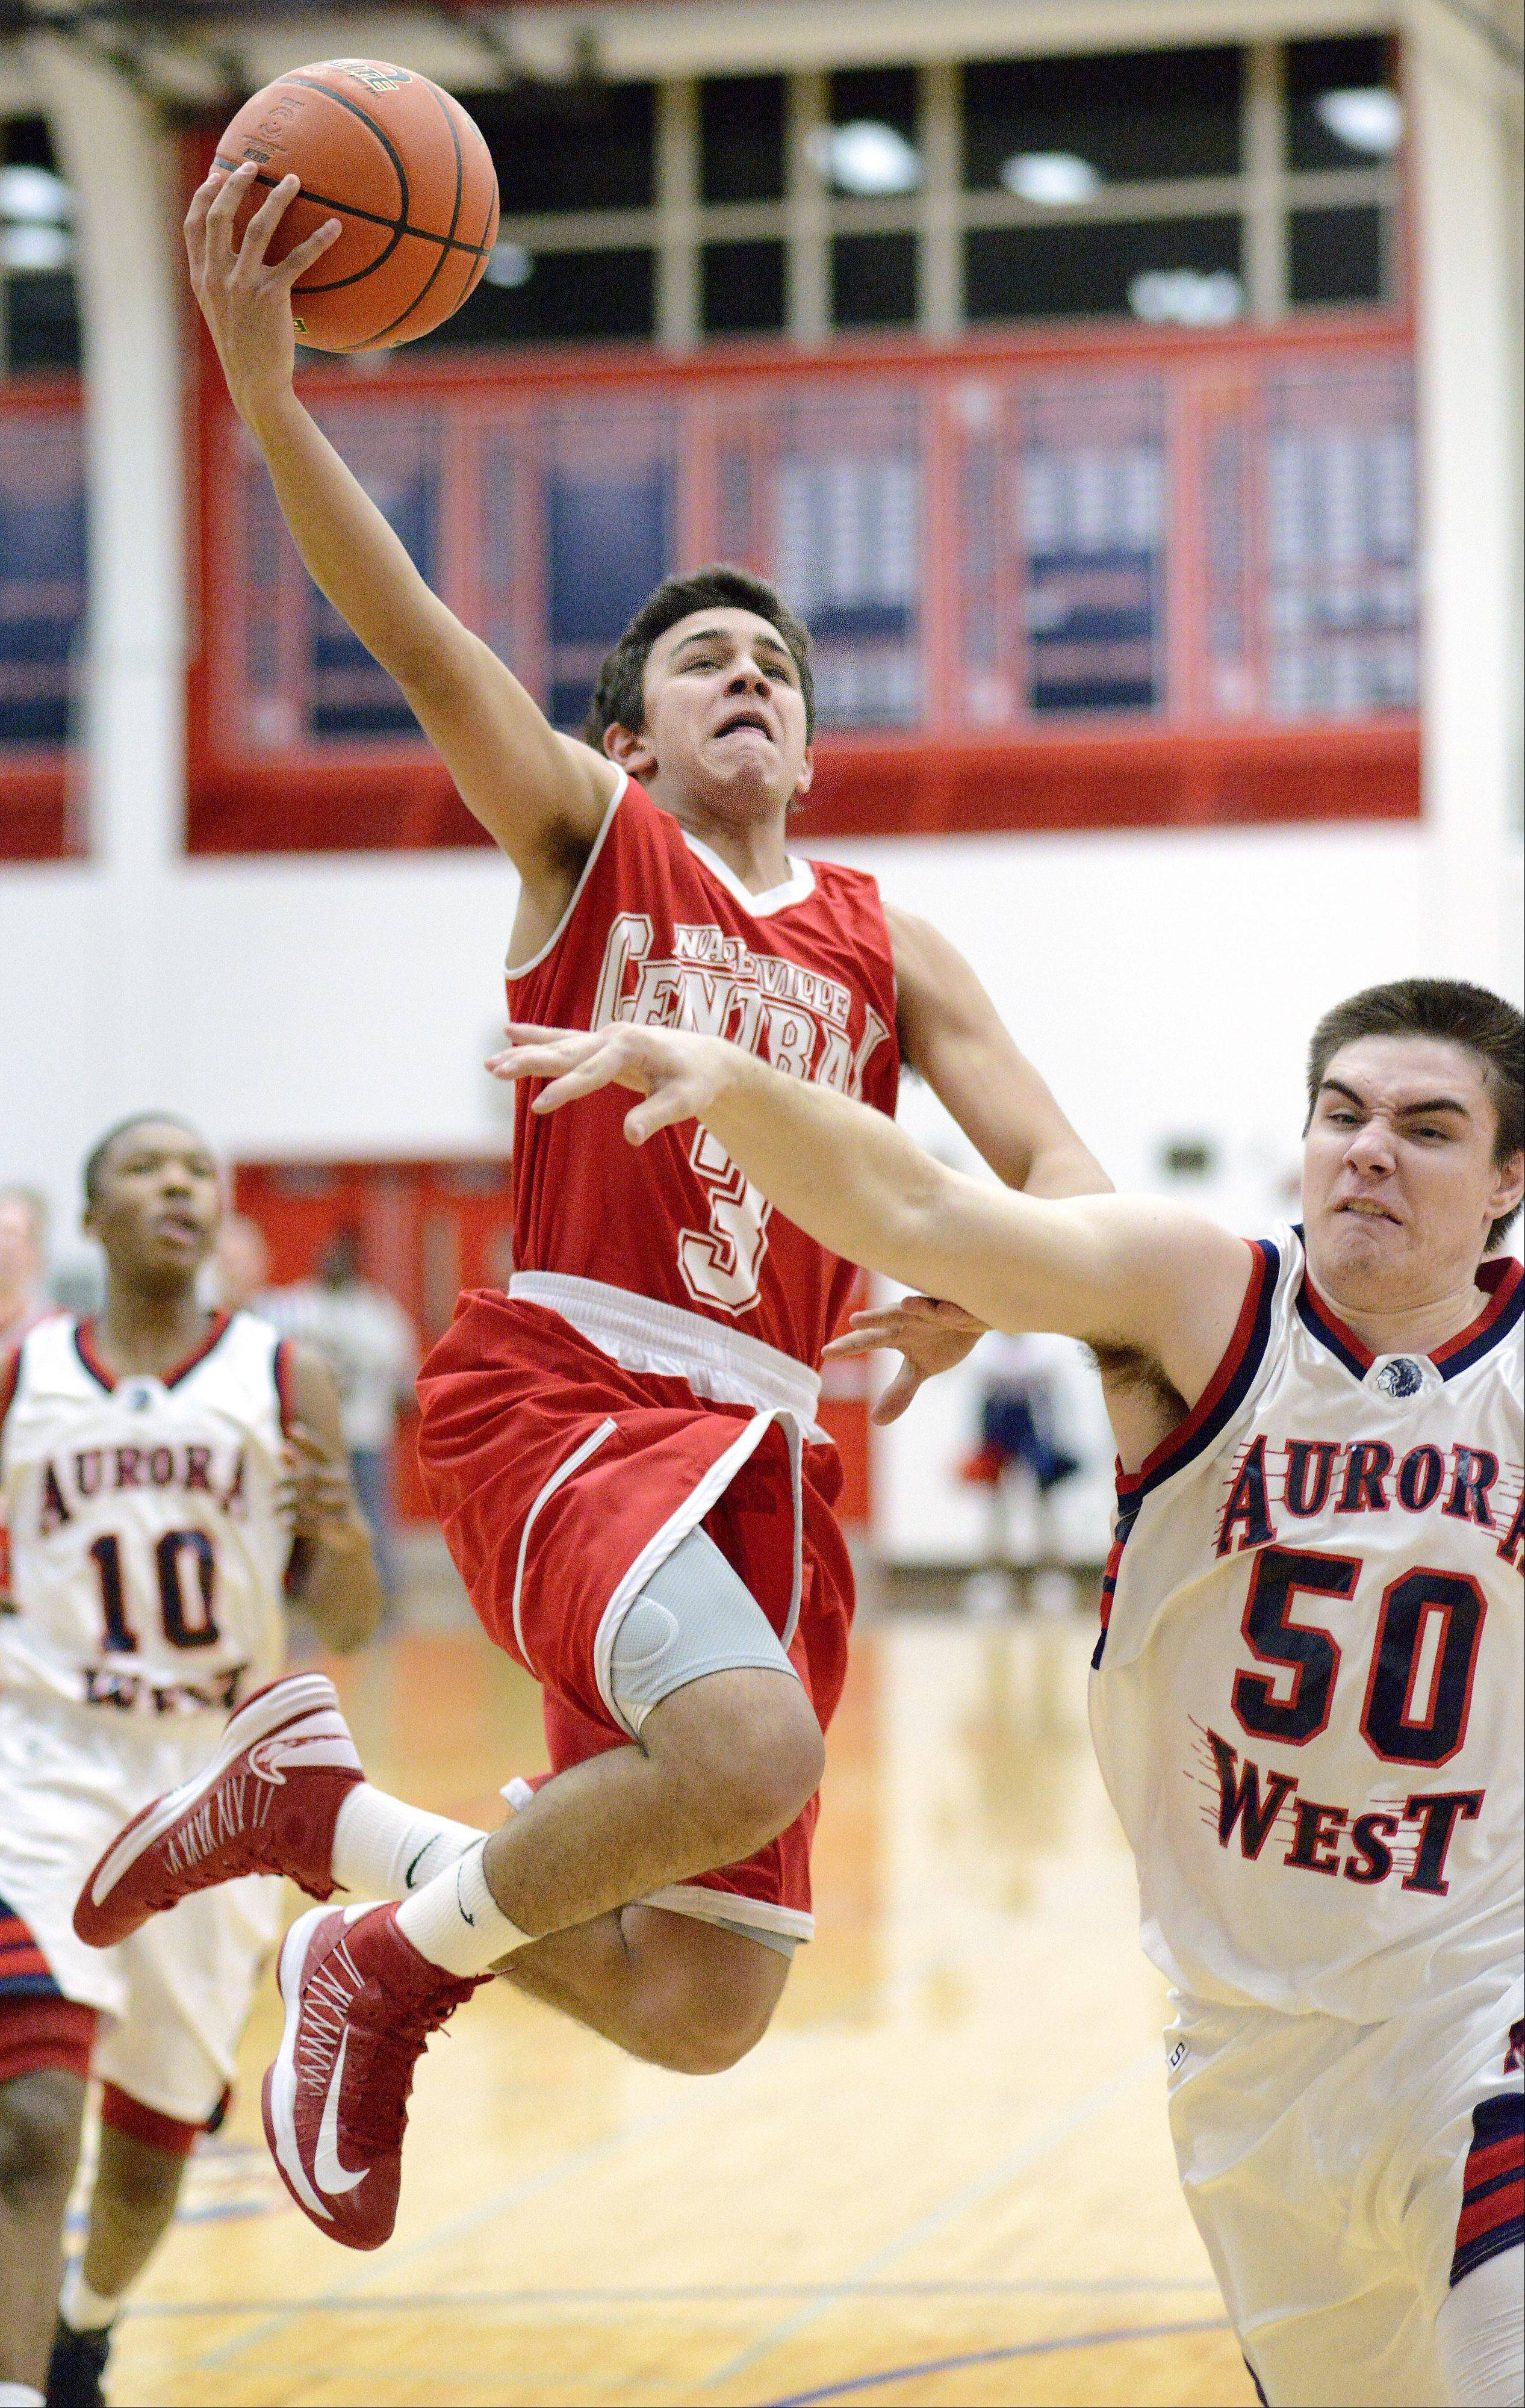 Naperville Central's Nicky Lopez flies overhead of West Aurora's Chandler Thomas in the first quarter on Tuesday, January 29.